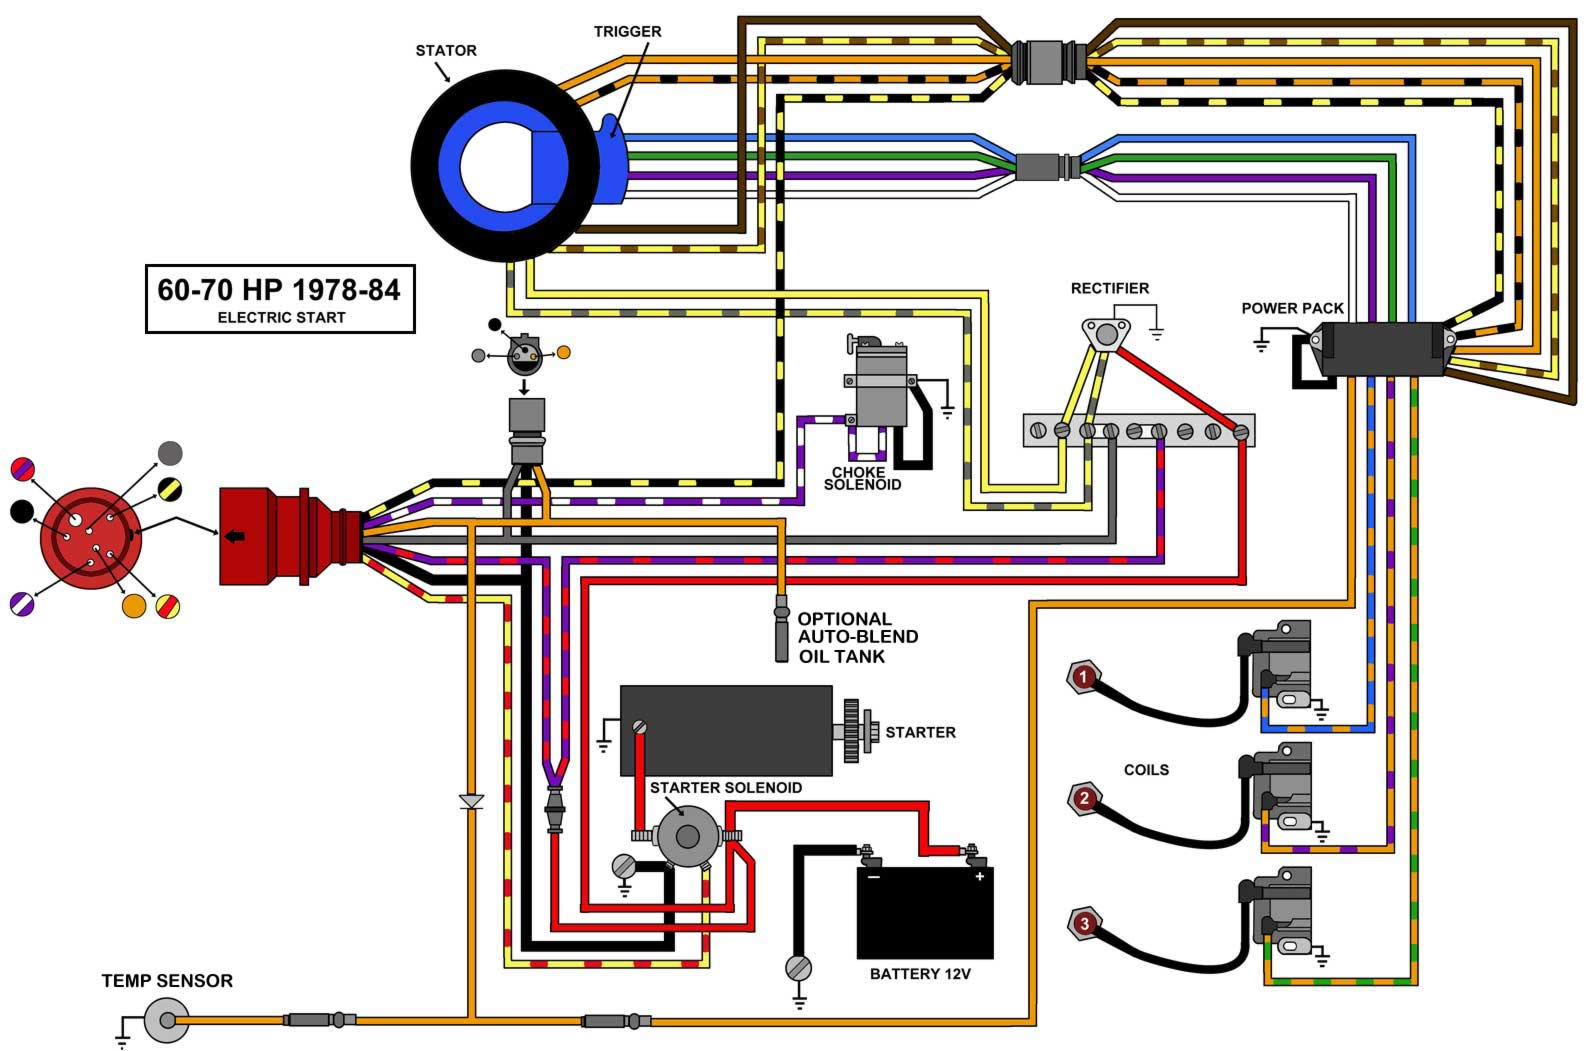 wiring tach from johnson controls page 1 iboats boating forums mercury control box wiring diagram mercury outboard tachometer wiring diagram 1995 mercury outboard 115 hp wiring diagram